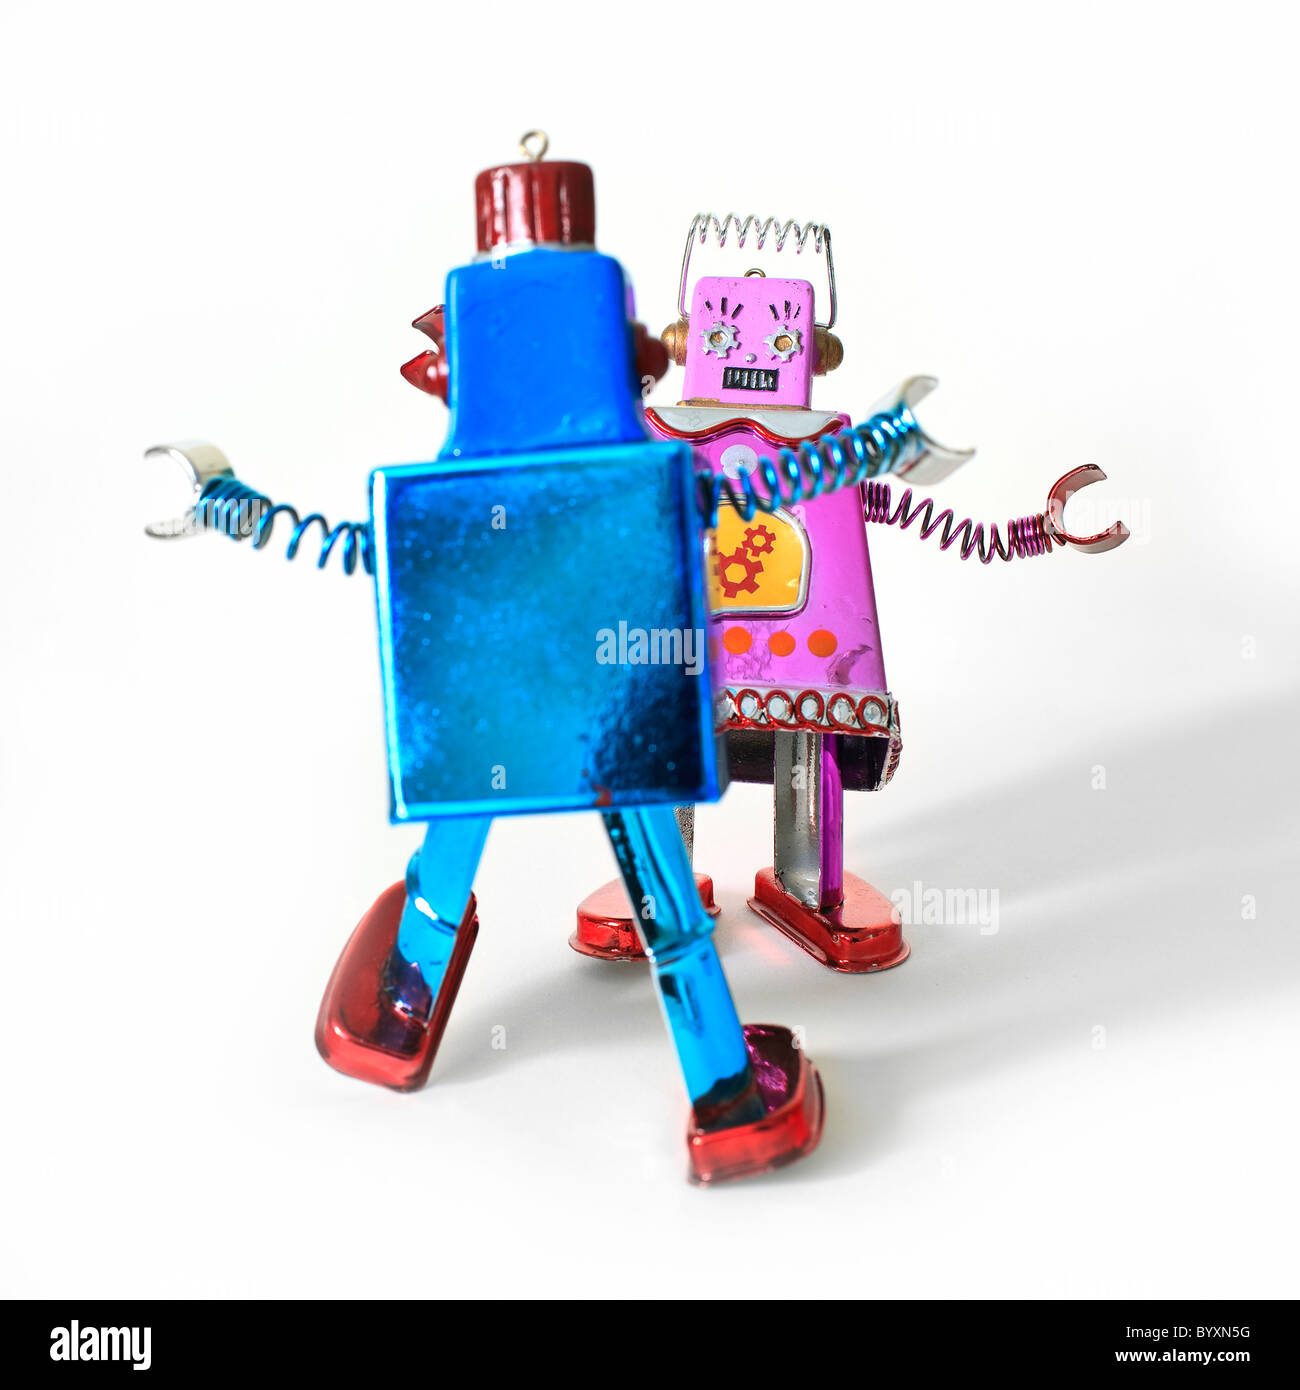 Dancing toy robots, male and female likeness. - Stock Image